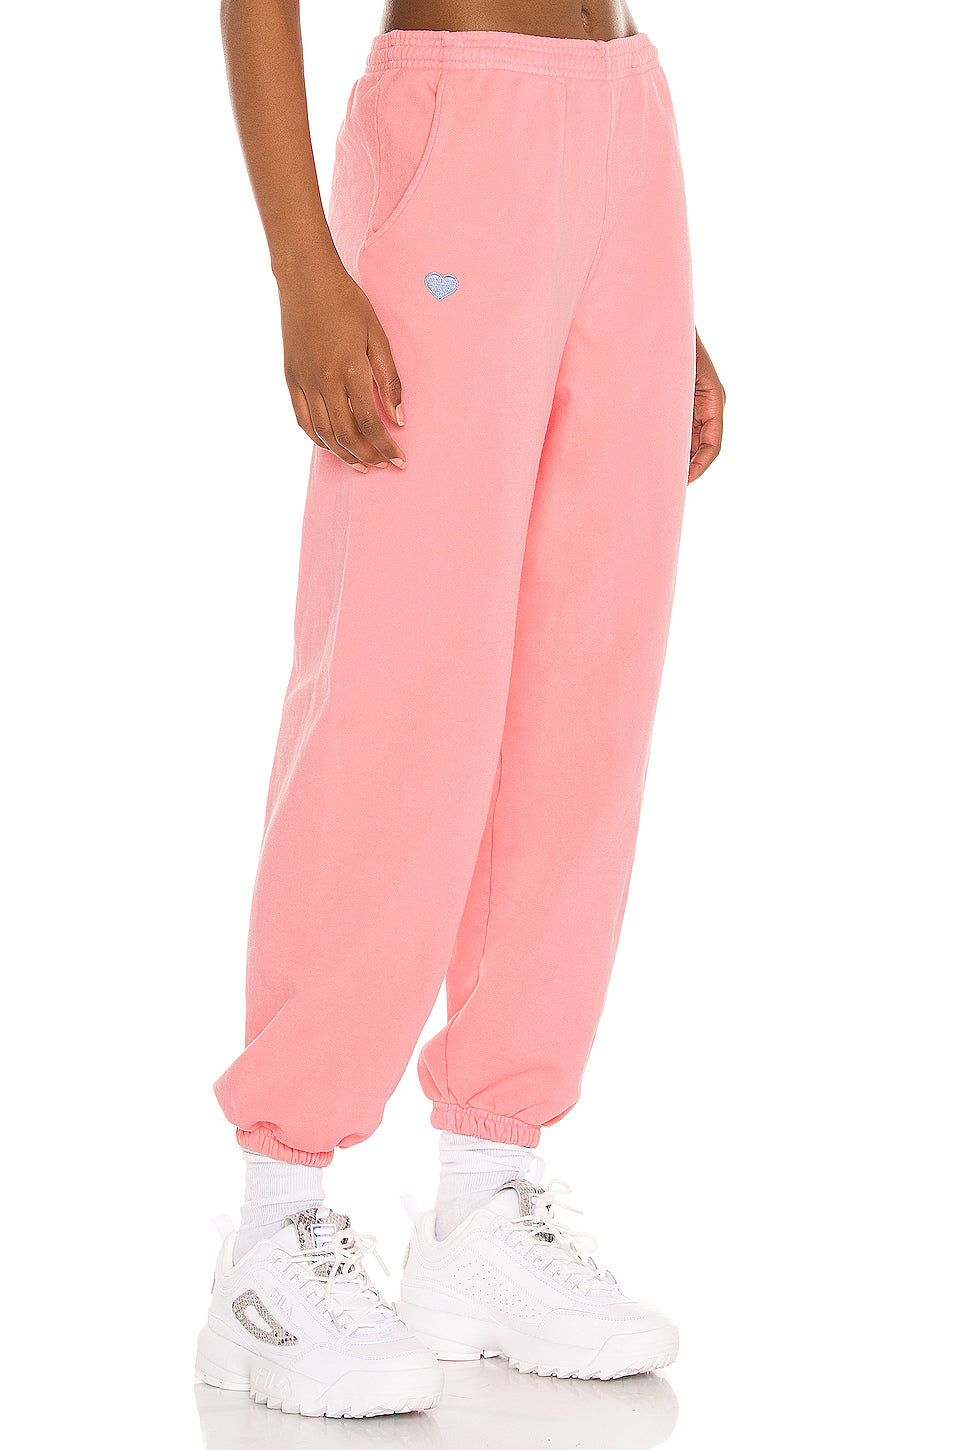 Heart Sweatpant